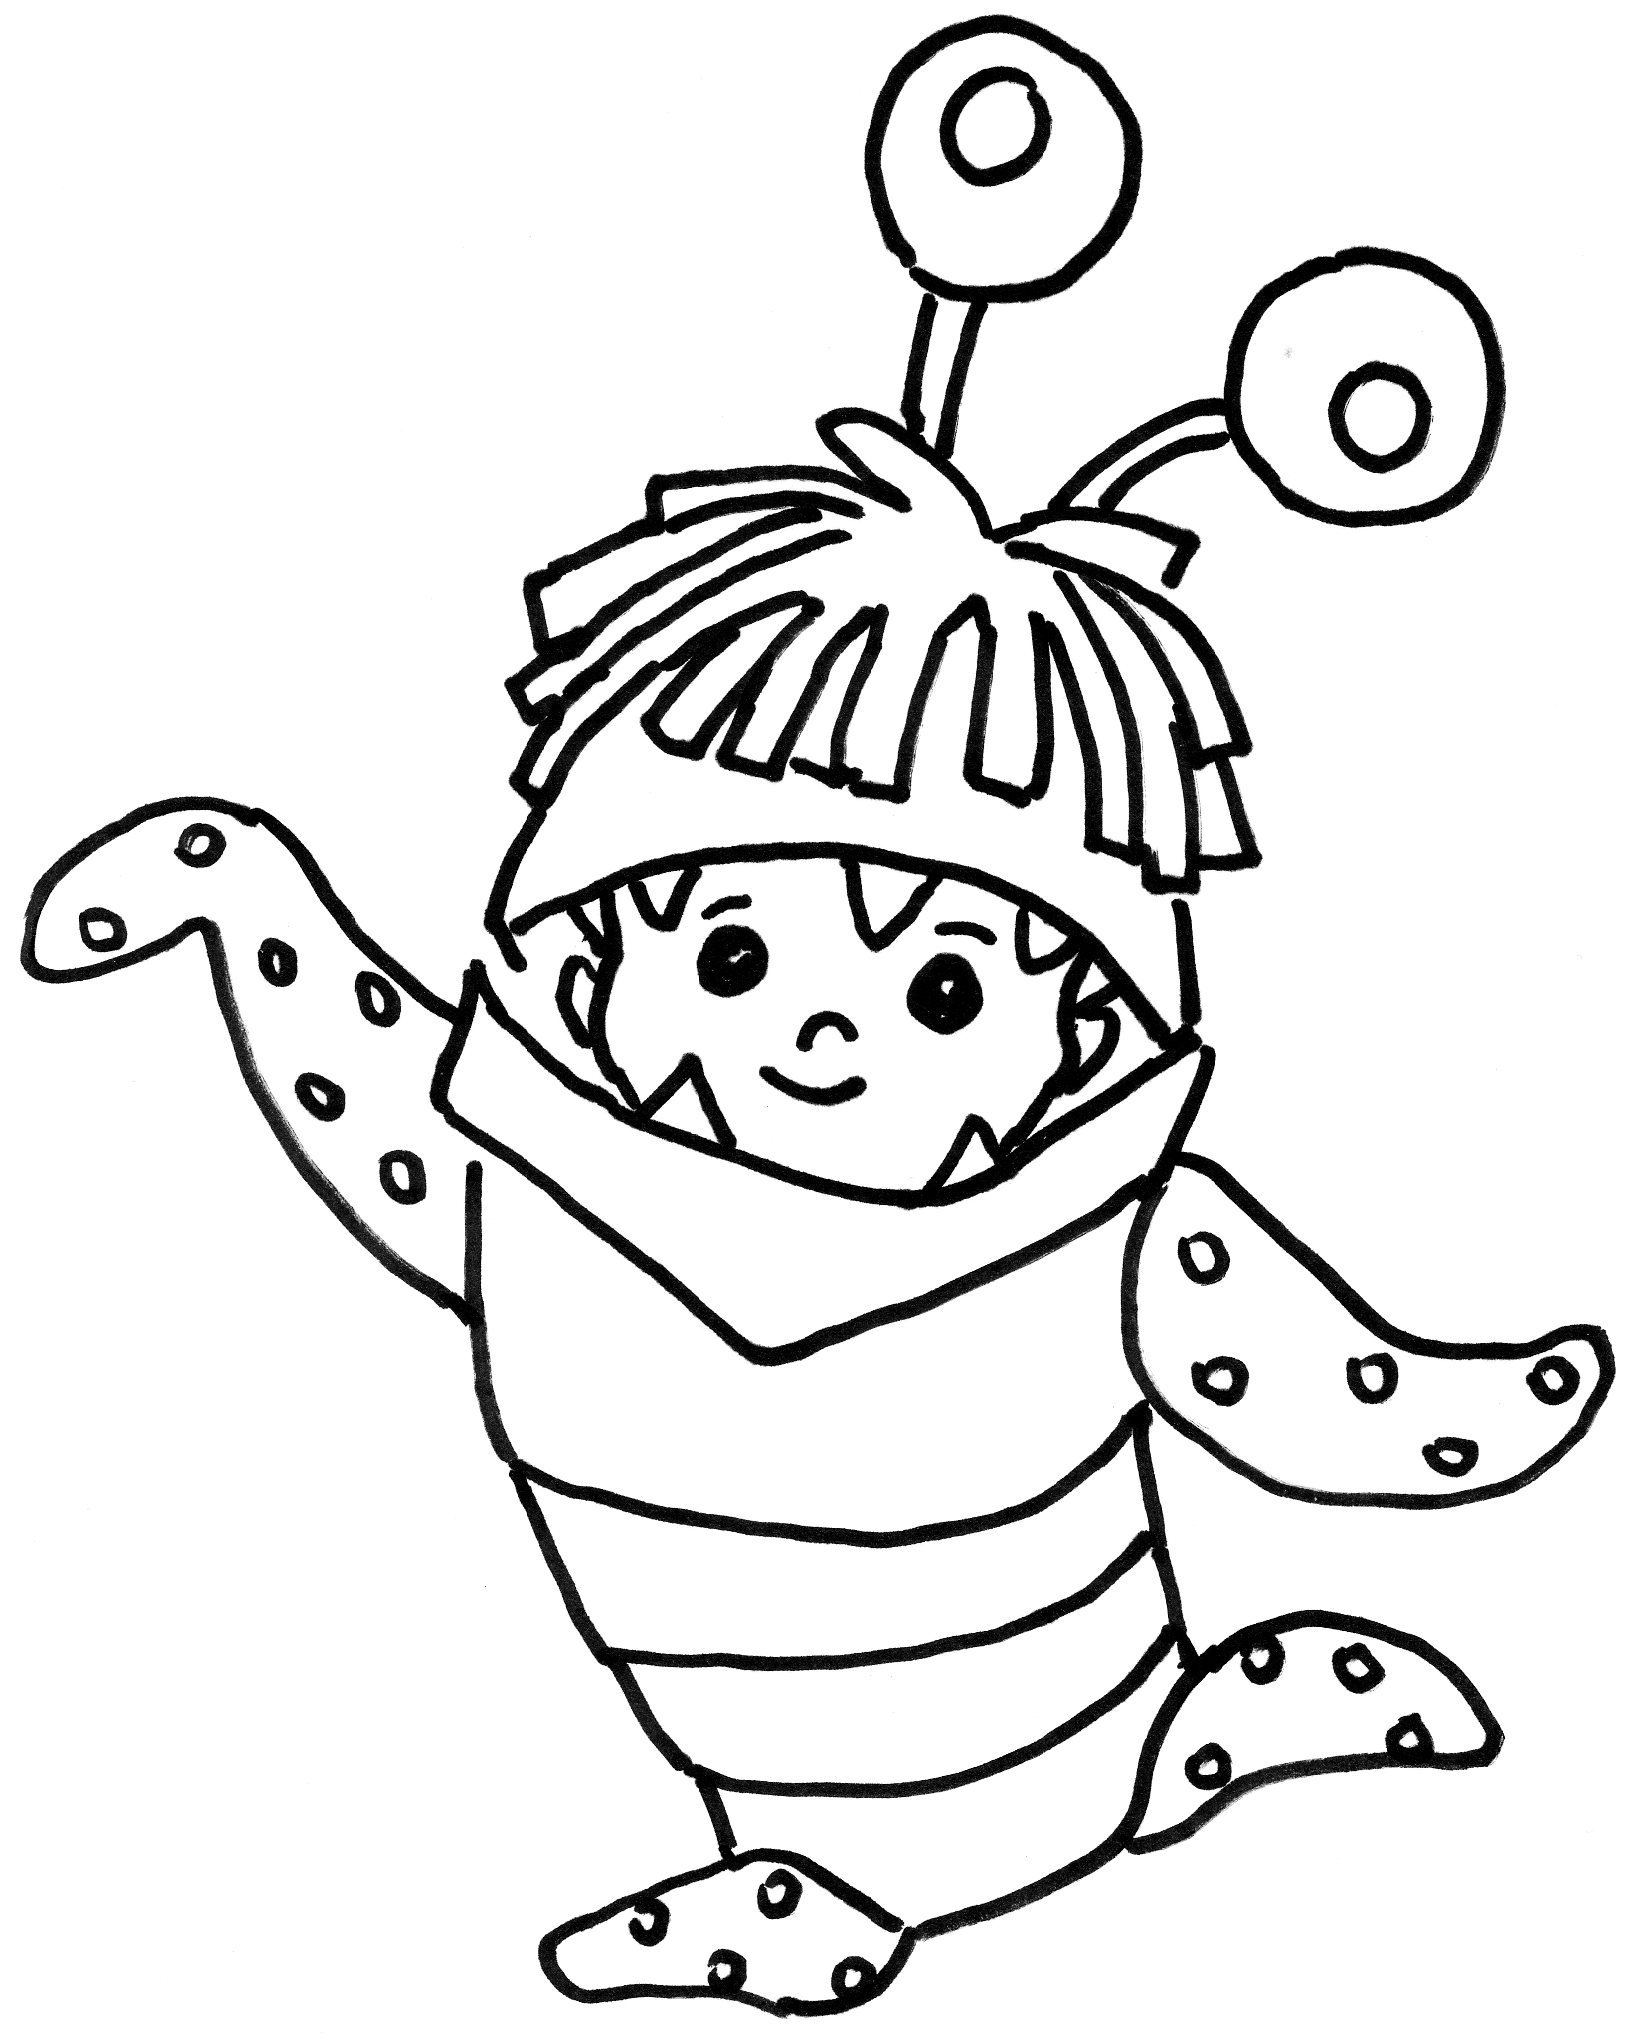 Boo Monsters Inc Coloring Pages at GetDrawings | Free download